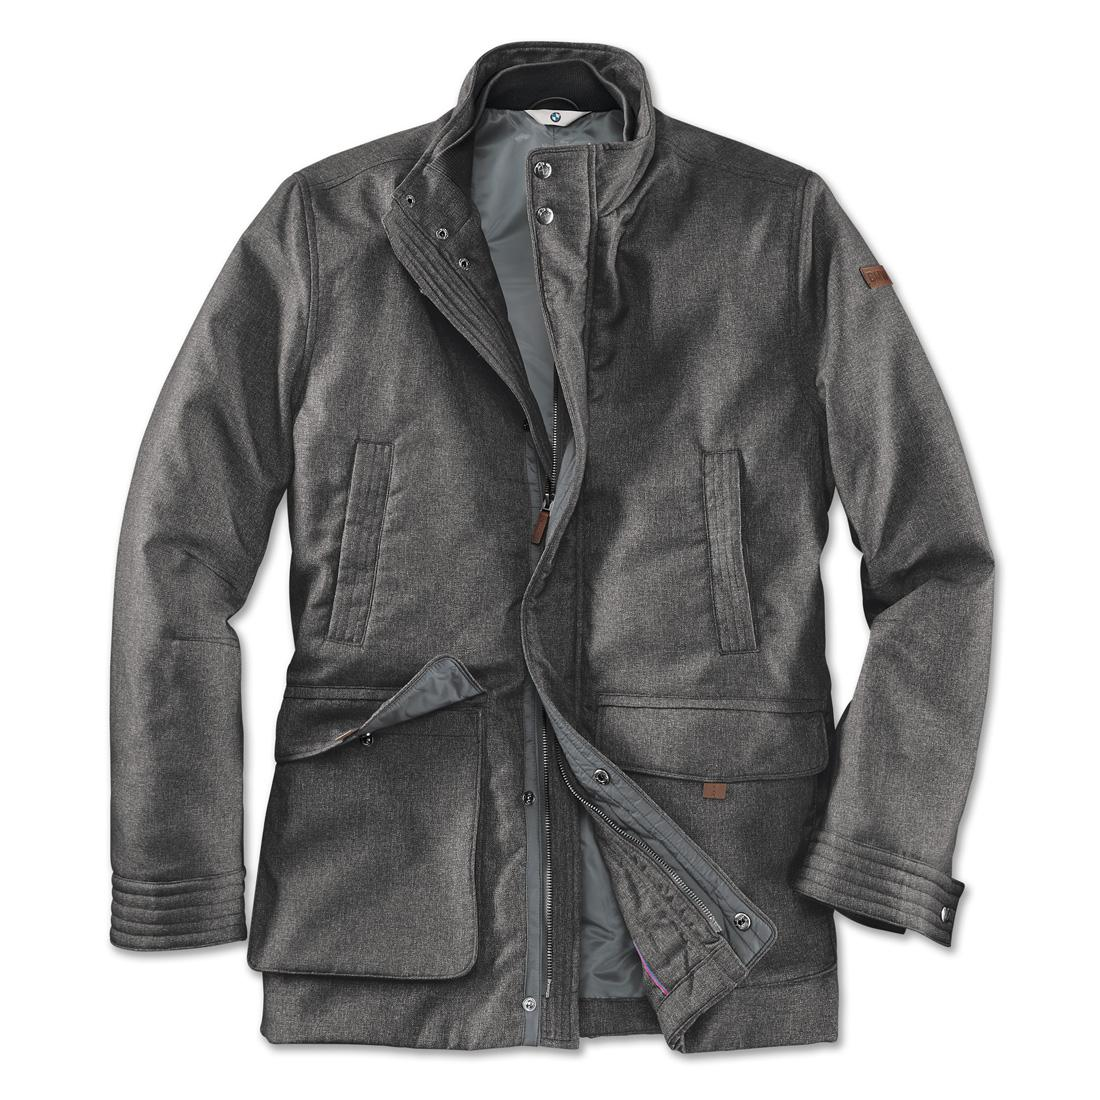 BMW Jacket Men's Grey